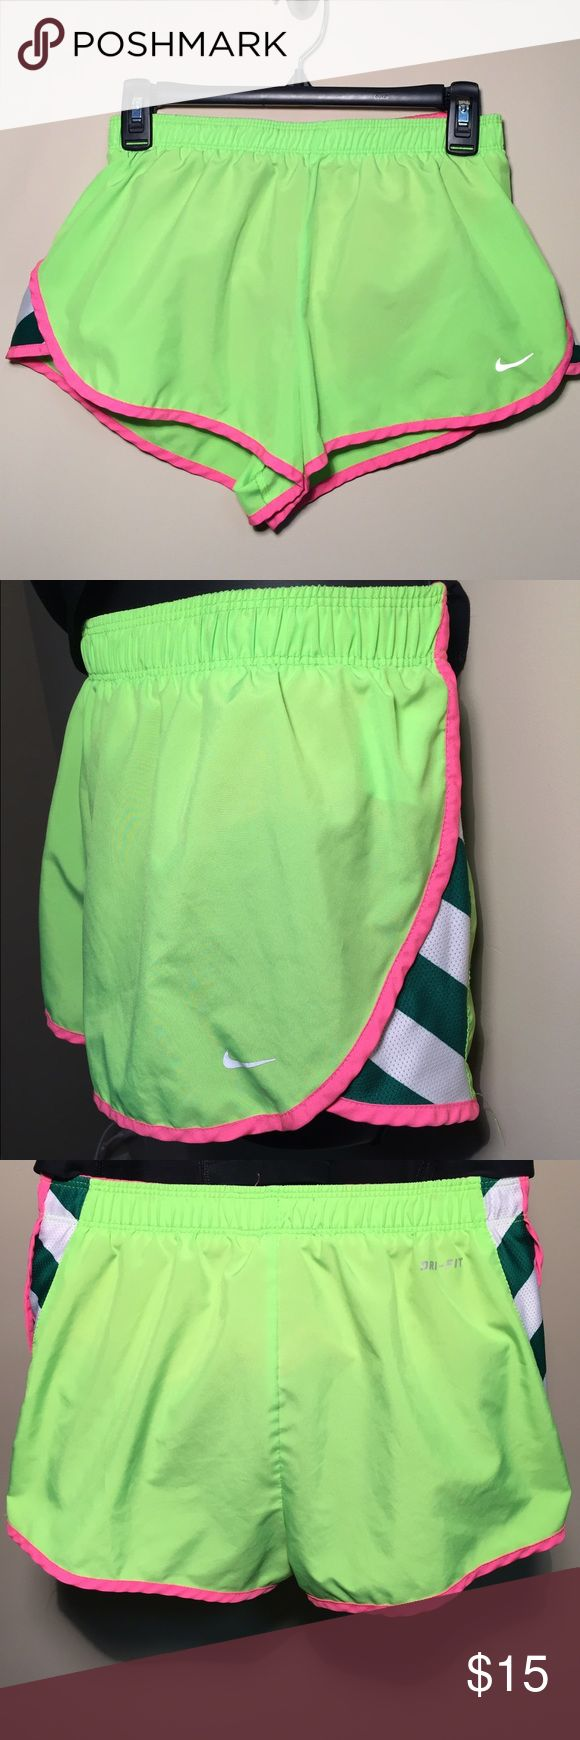 Nike Lime Green Running Shorts with Pink Piping Lime green running shorts with pink piping and green/ white striped side; excellent used condition; 13 inch waist; built in briefs Nike Shorts